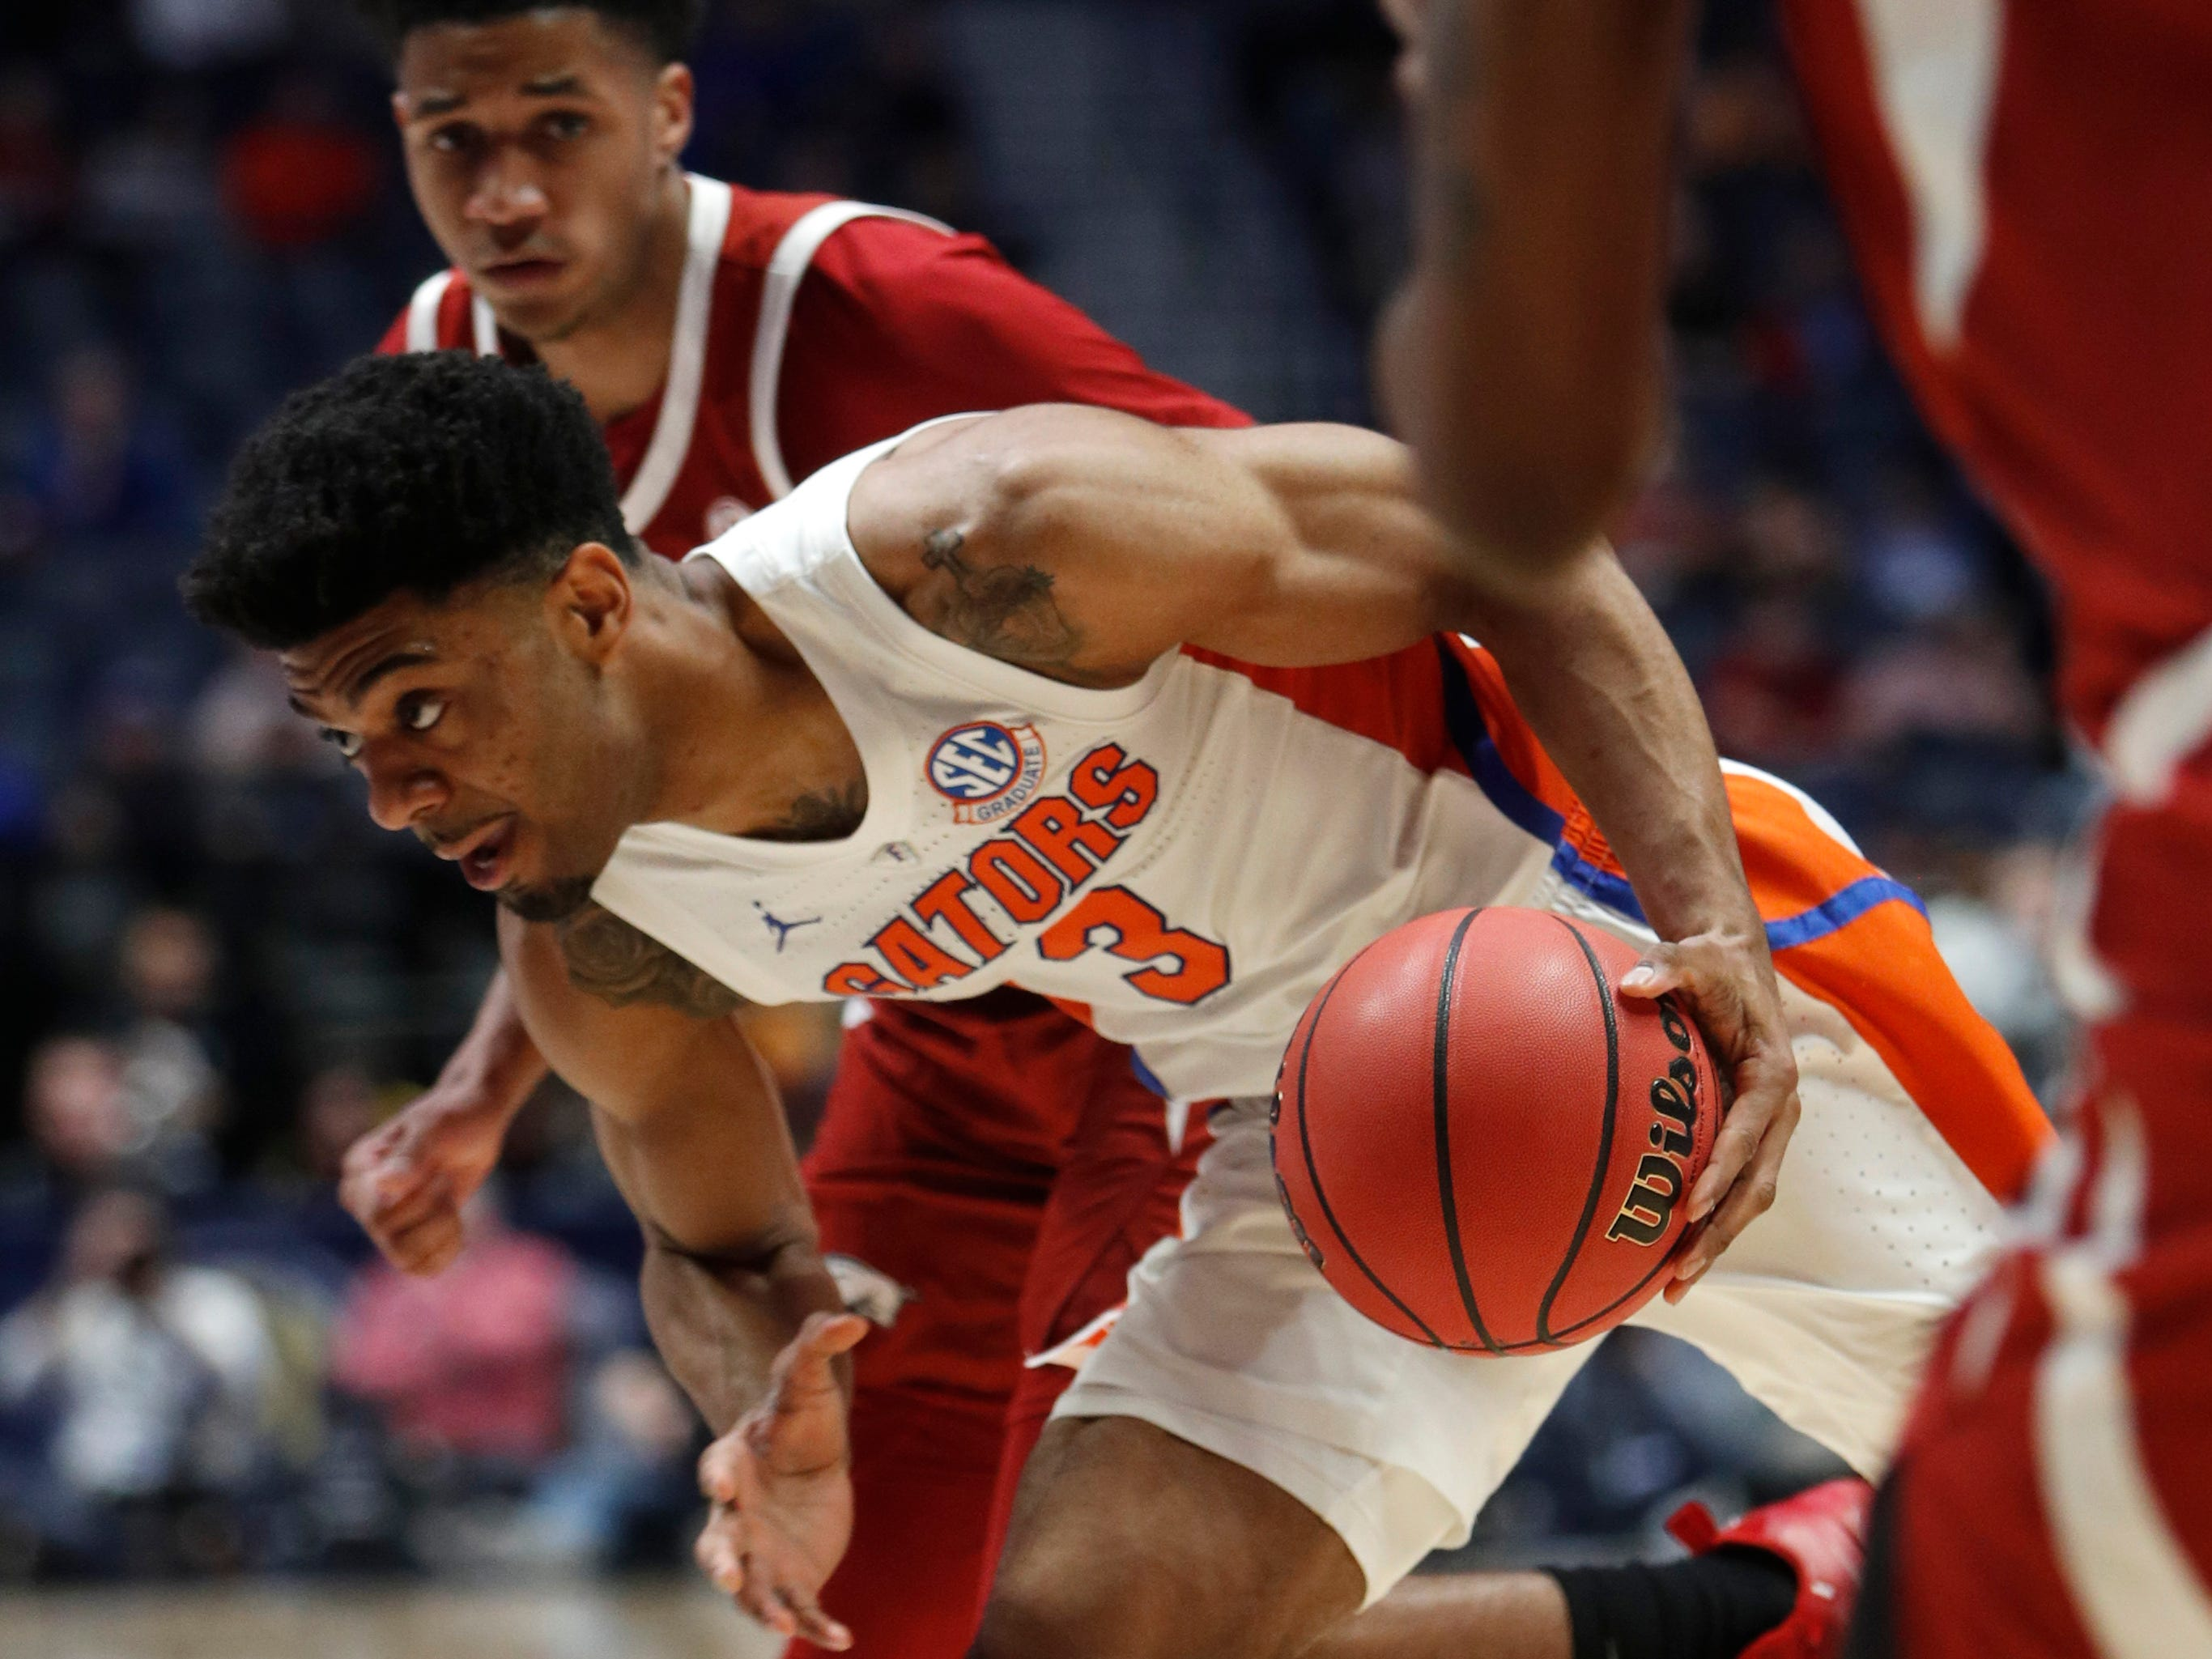 Florida guard Jalen Hudson (3) moves hte ball during the second half of the SEC Men's Basketball Tournament game at Bridgestone Arena in Nashville, Tenn., Thursday, March 14, 2019.